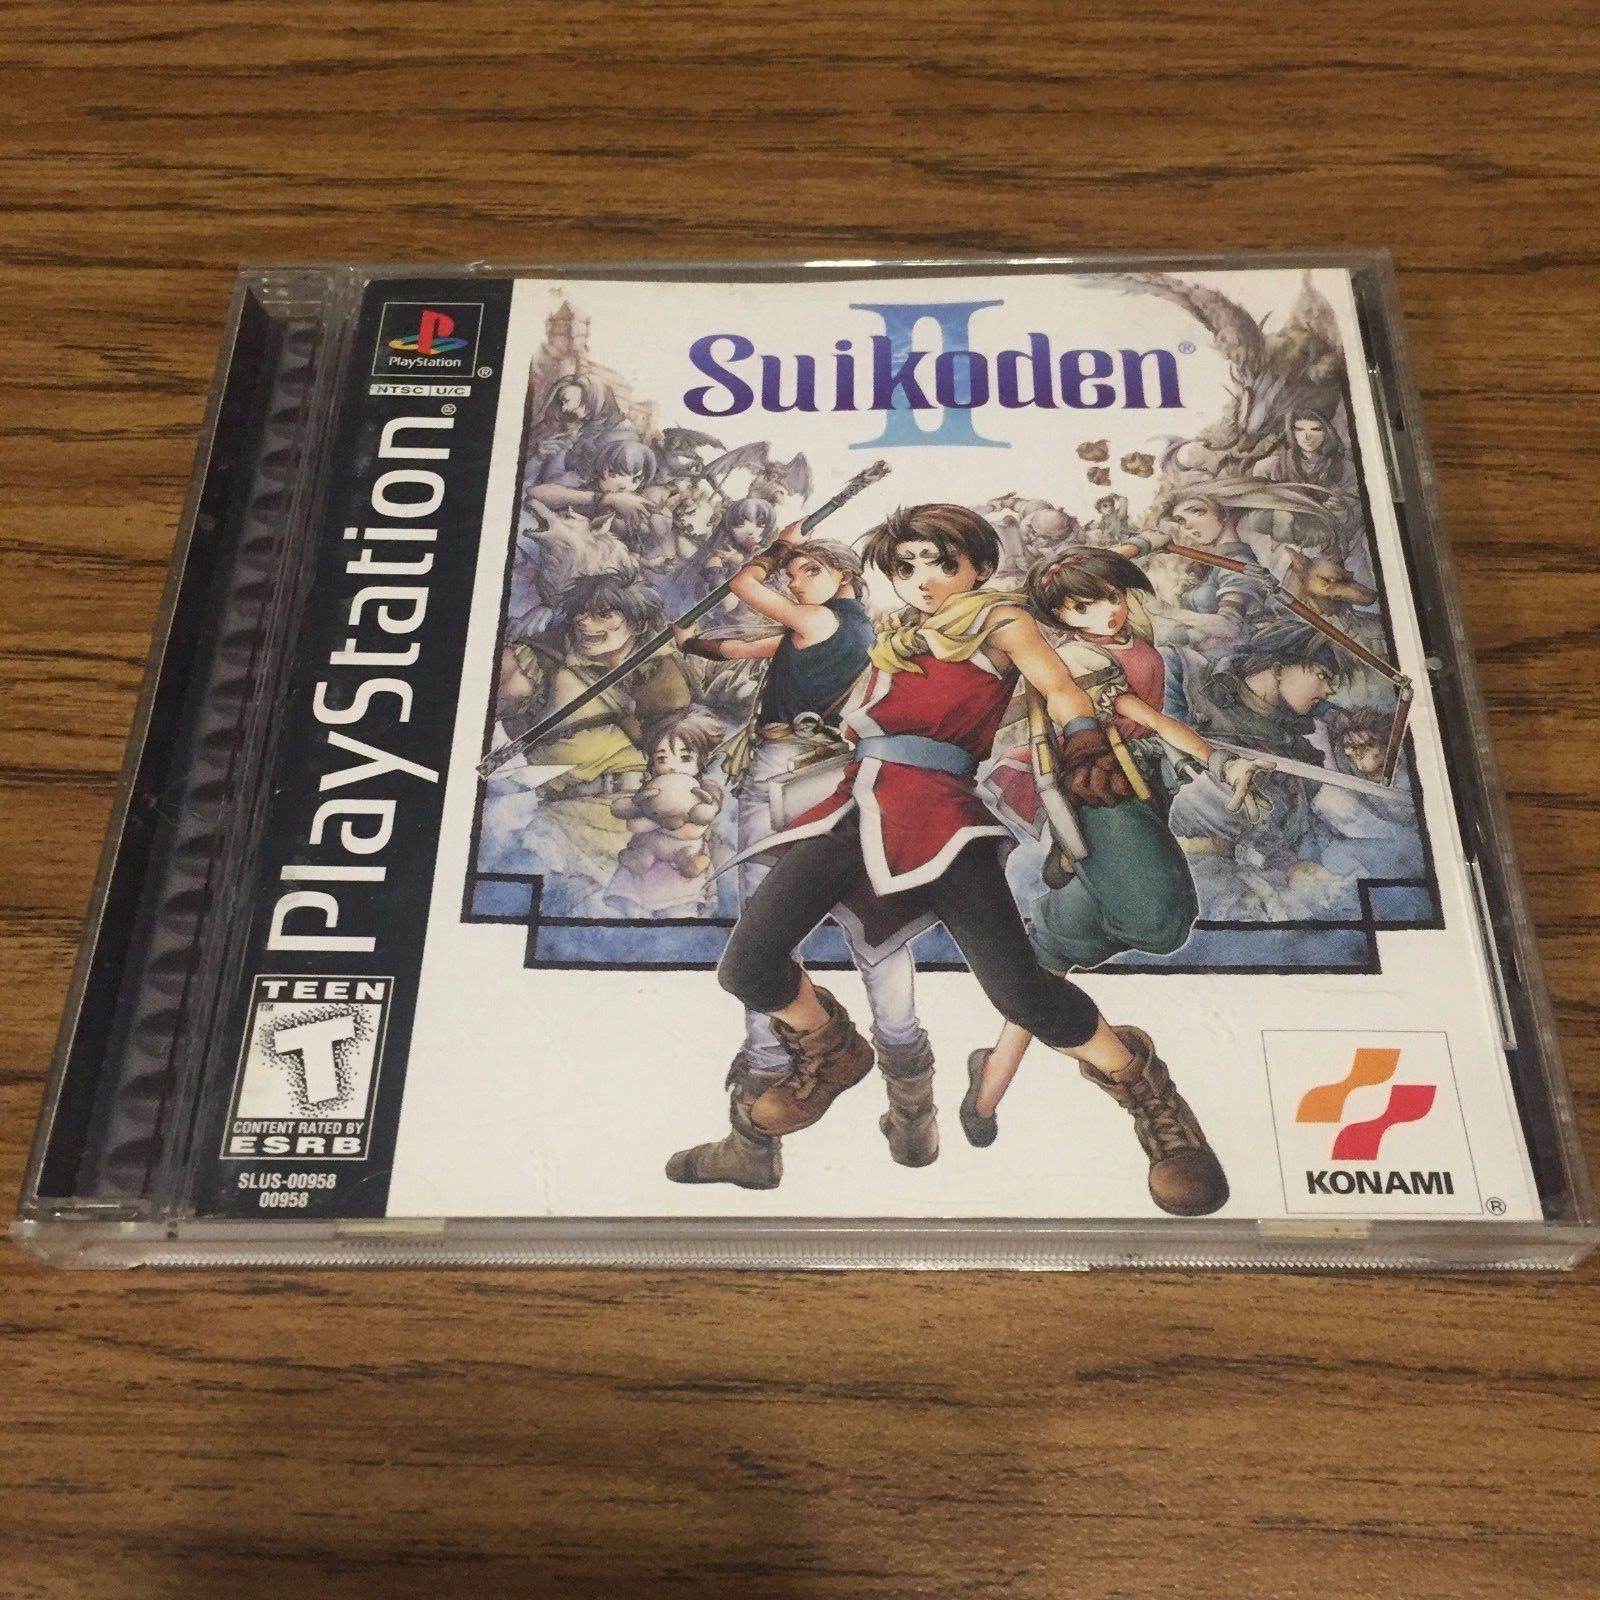 Image result for Suikoden II case